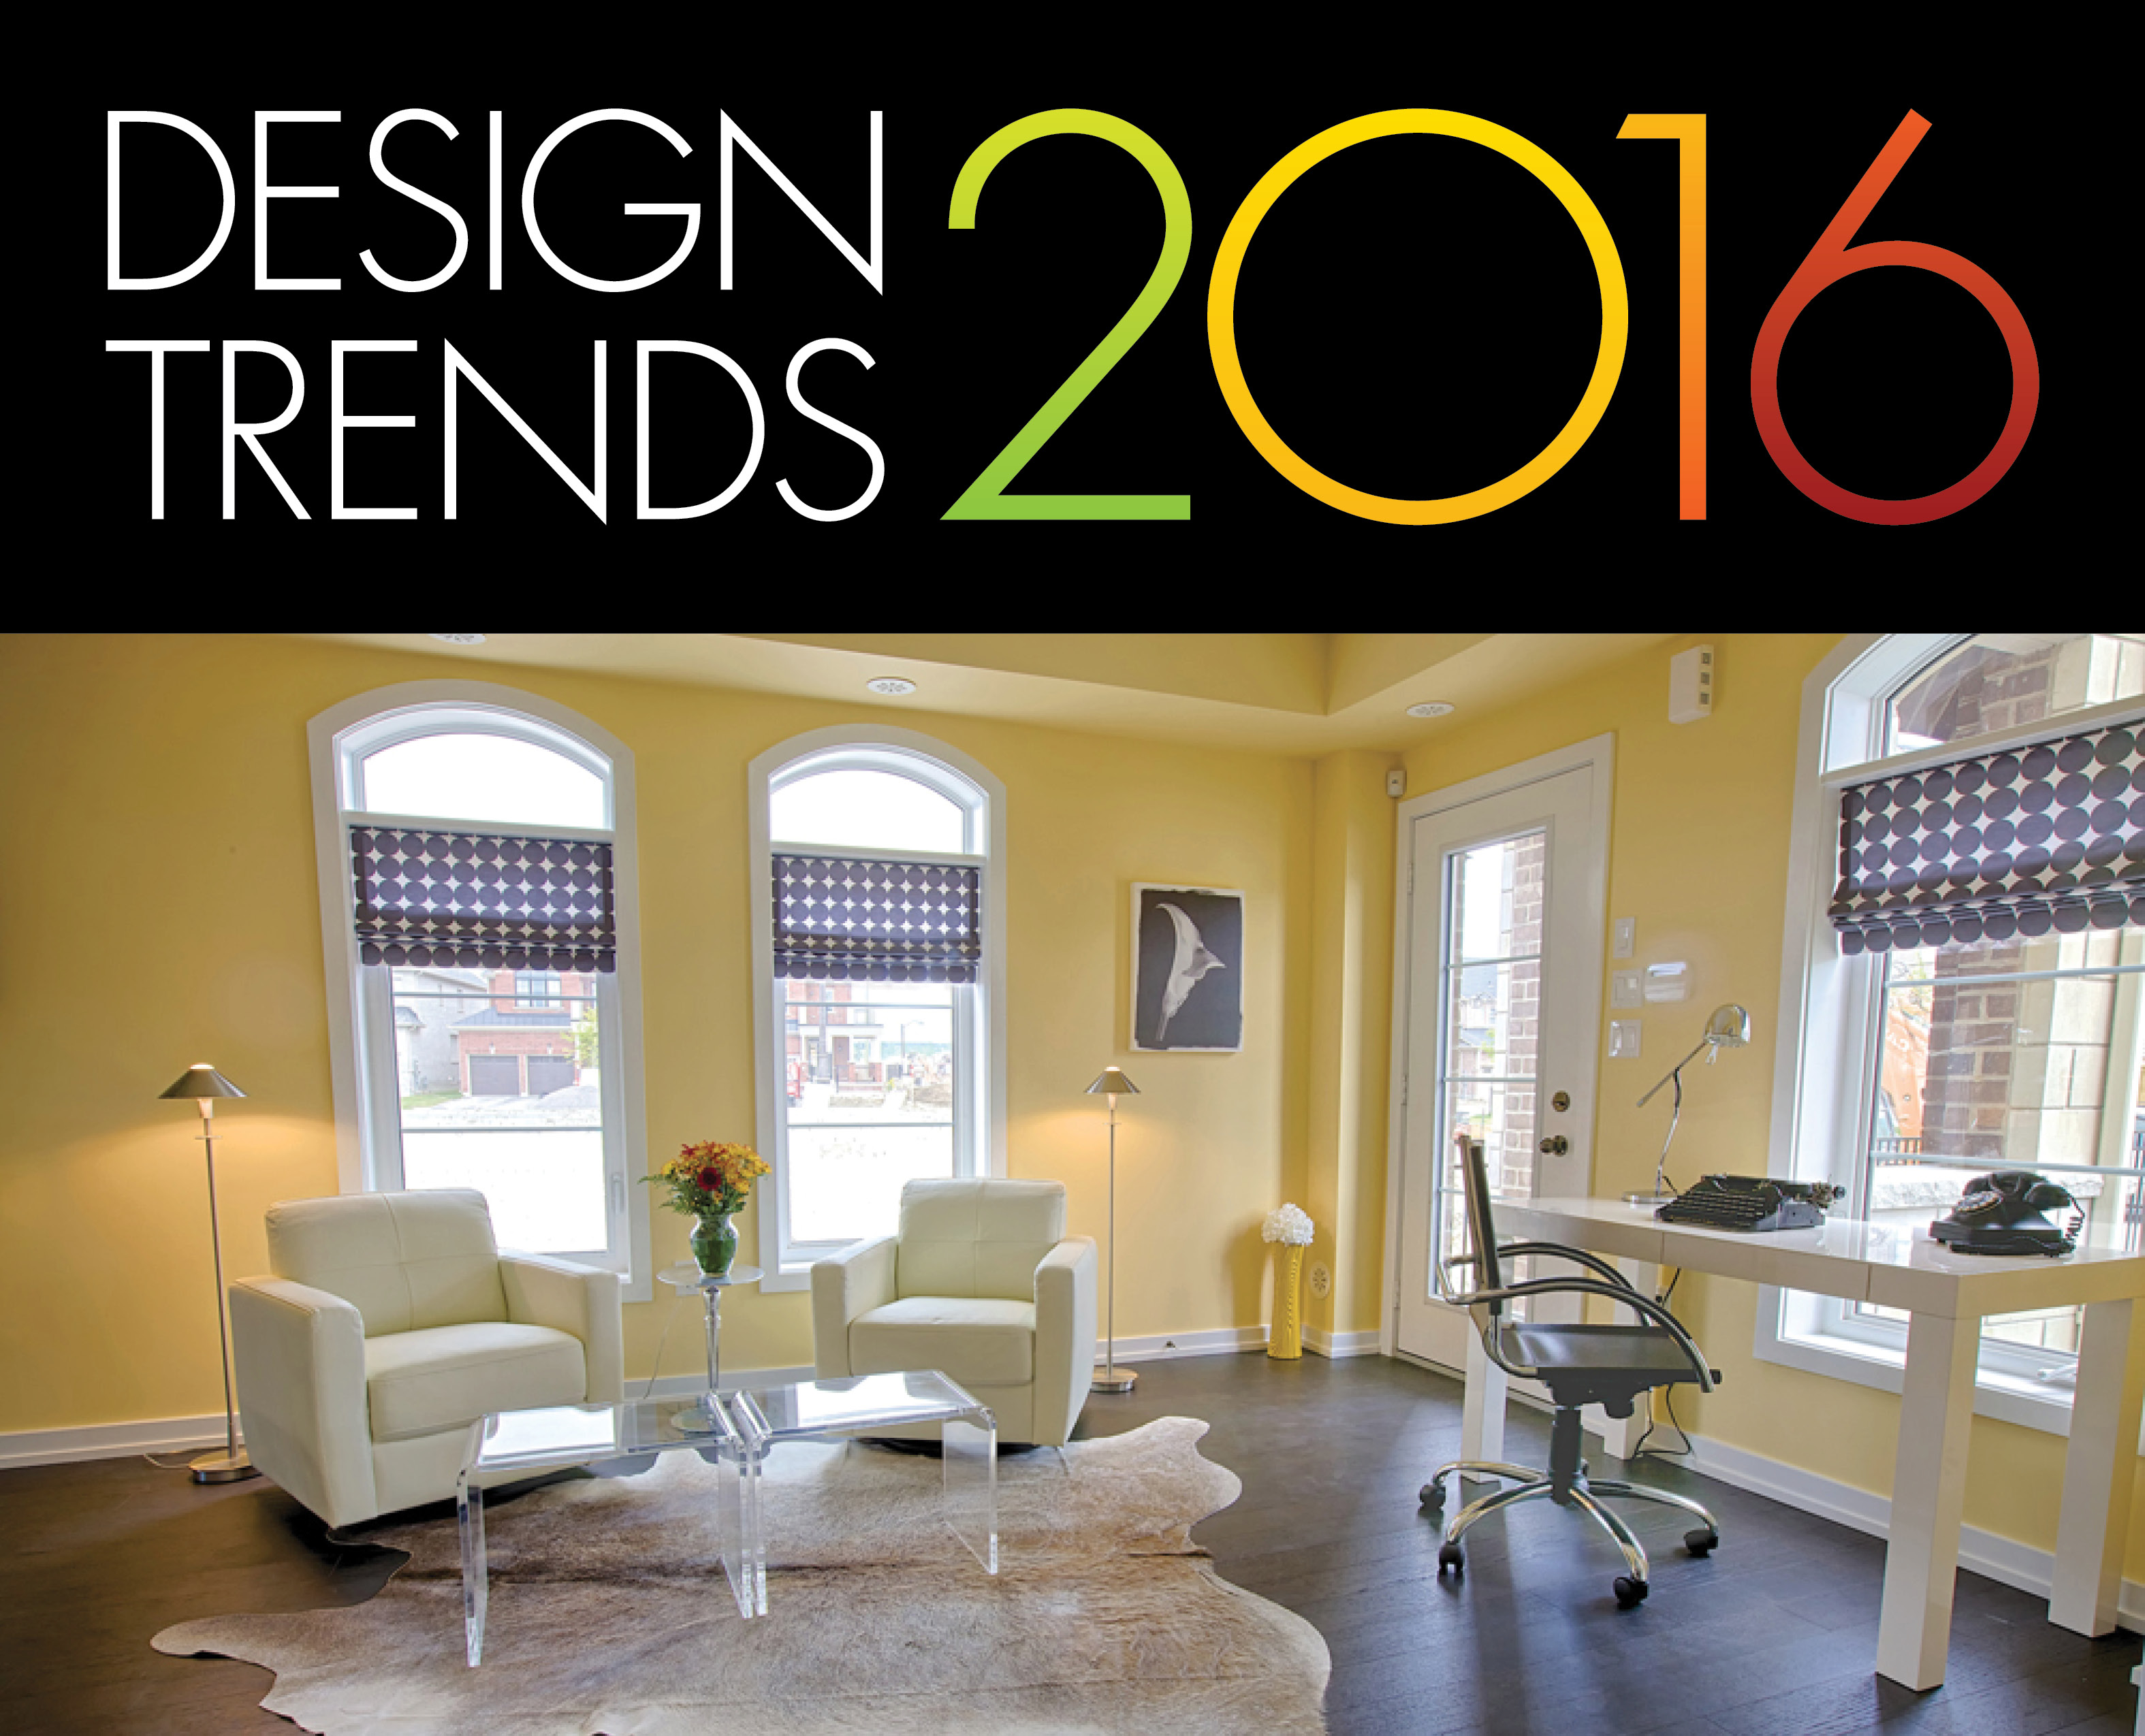 design_trends2016b - Home Design Trends